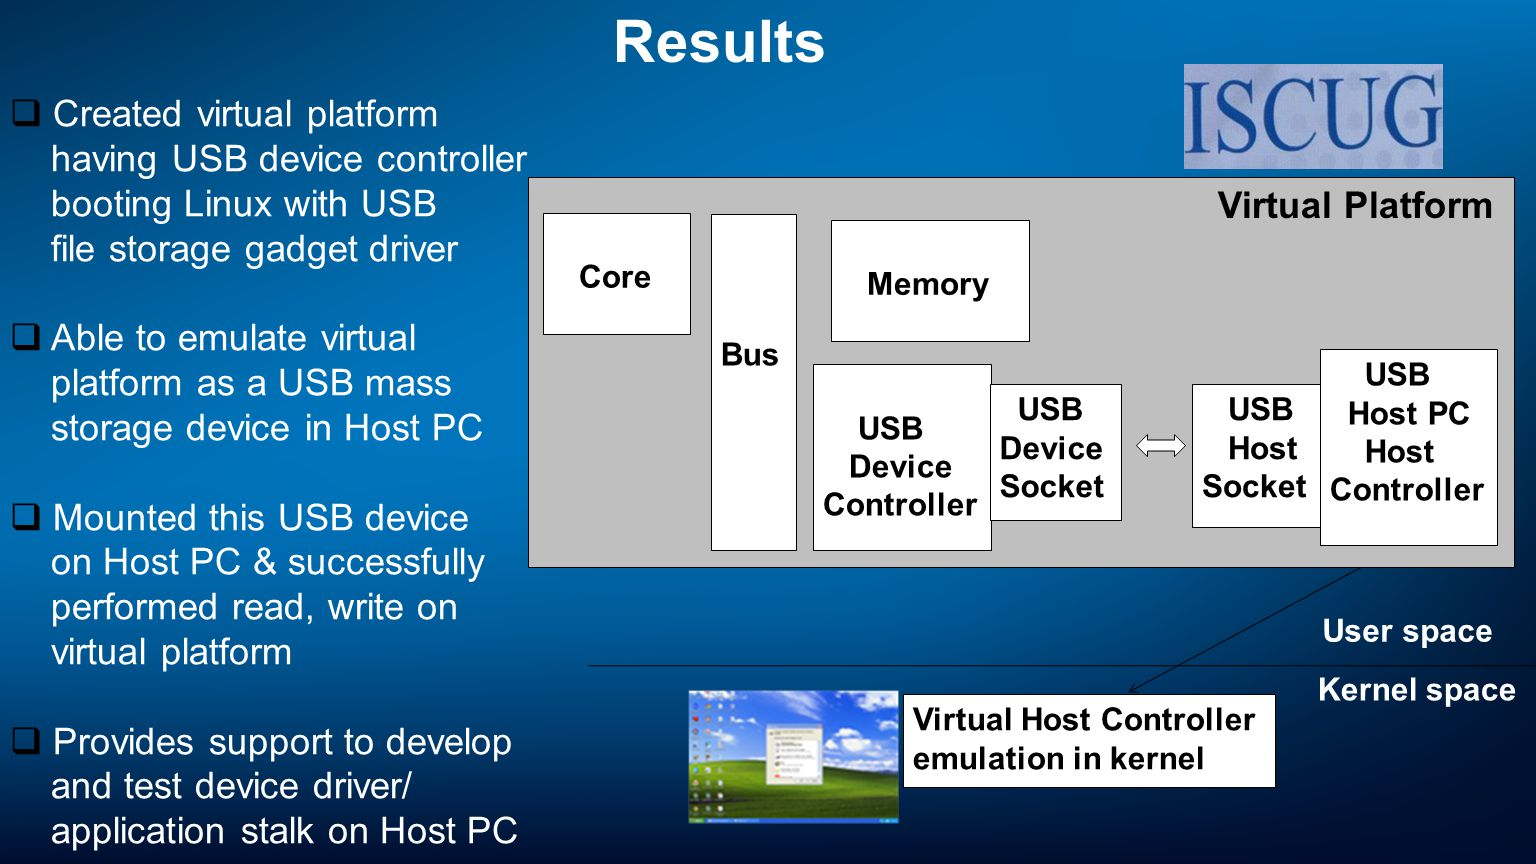 Created virtual platform having USB device controller booting Linux with USB file storage gadget driver Able to emulate virtual platform as a USB mass storage device in Host PC Mounted this USB device on Host PC & successfully performed read, write on virtual platform Provides support to develop and test device driver/ application stalk on Host PC Results Kernel space Virtual Platform Core Bus Memory USB Device Controller USB Device Socket USB Host PC Host Controller USB Host Socket Virtual Host Controller emulation in kernel User space